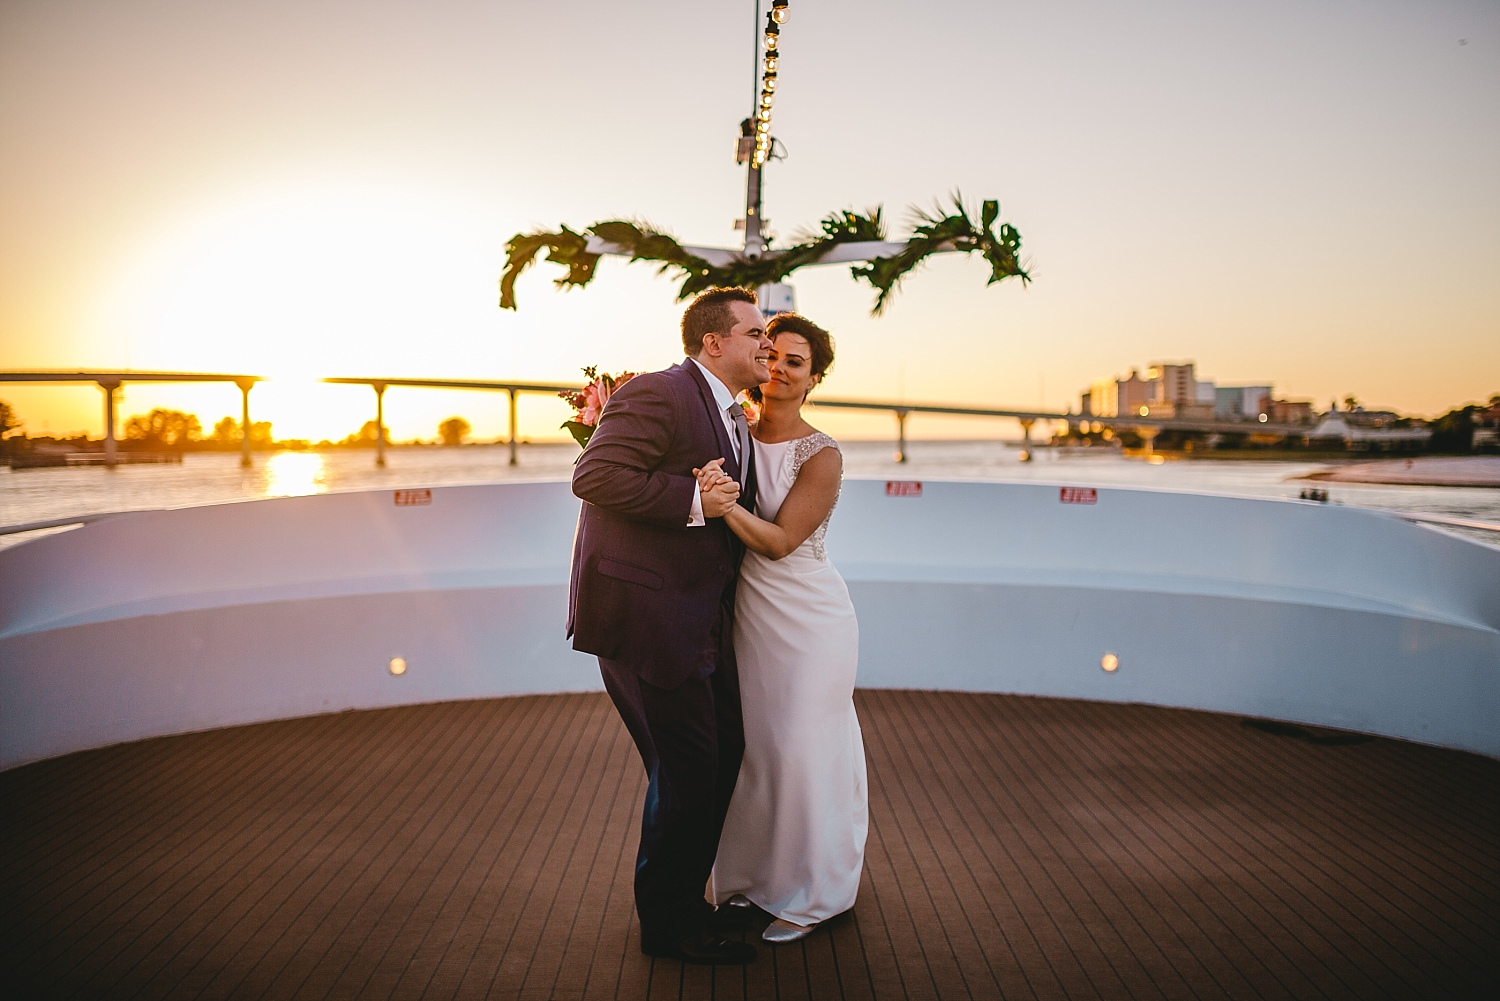 A Tropical Beach Wedding on the Yacht Starship in Clearwater, Florida_0554.jpg